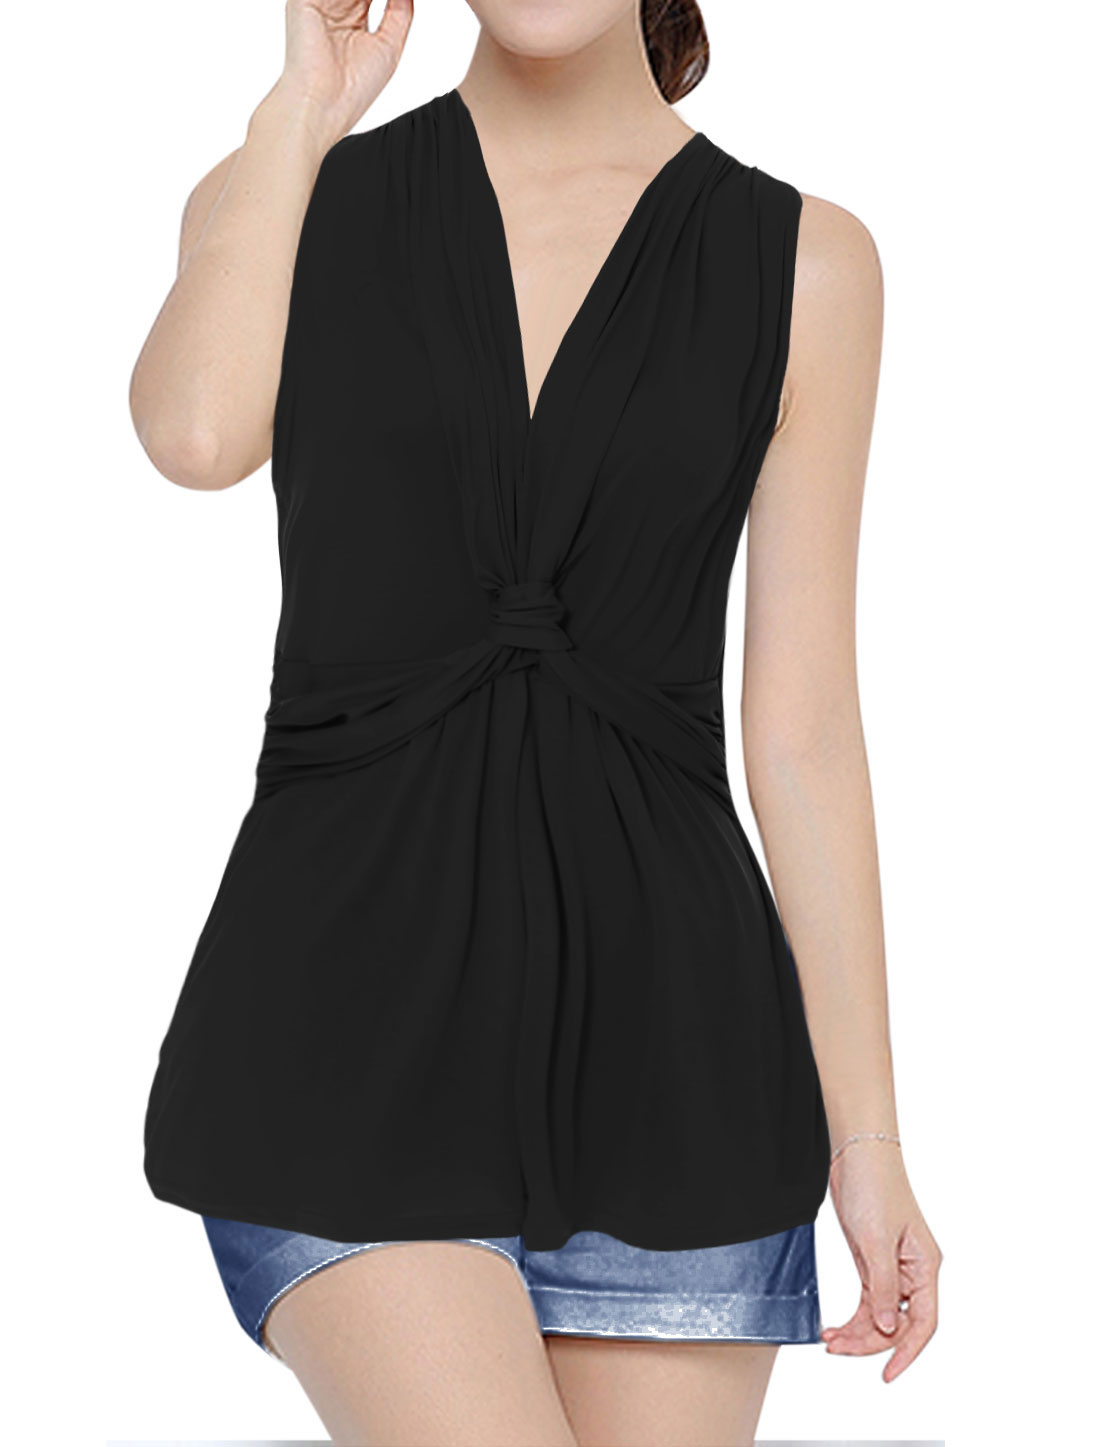 Women Sleeveless V Neck Ruched Shoulder Knot Front Top Black M